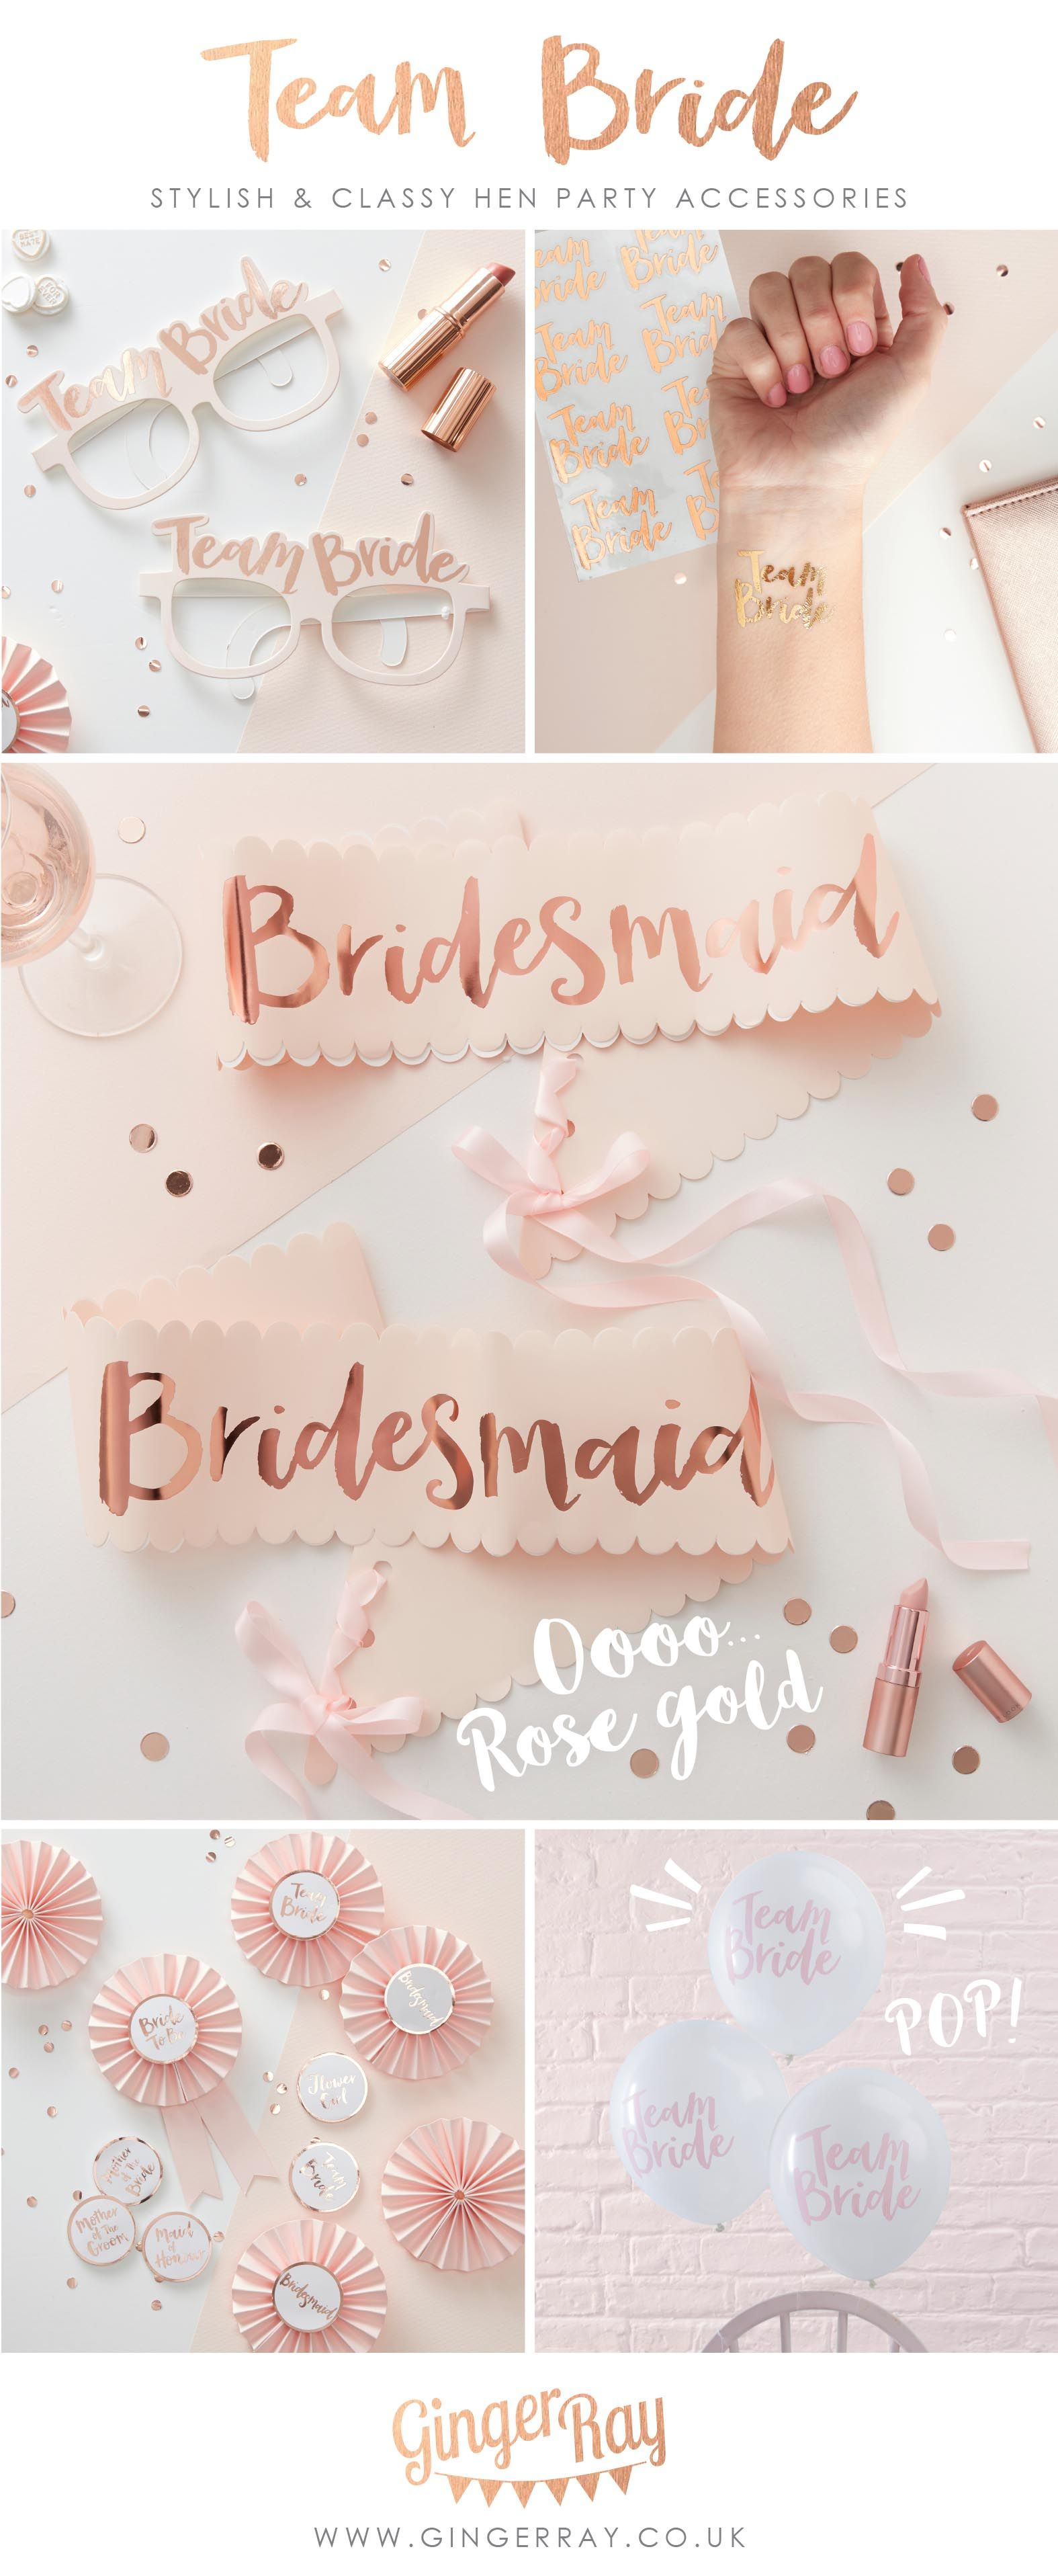 HEN PARTY Rose Gold TEAM BRIDE GLASSES x 8 Fun and Quirky Classy Party Accessory